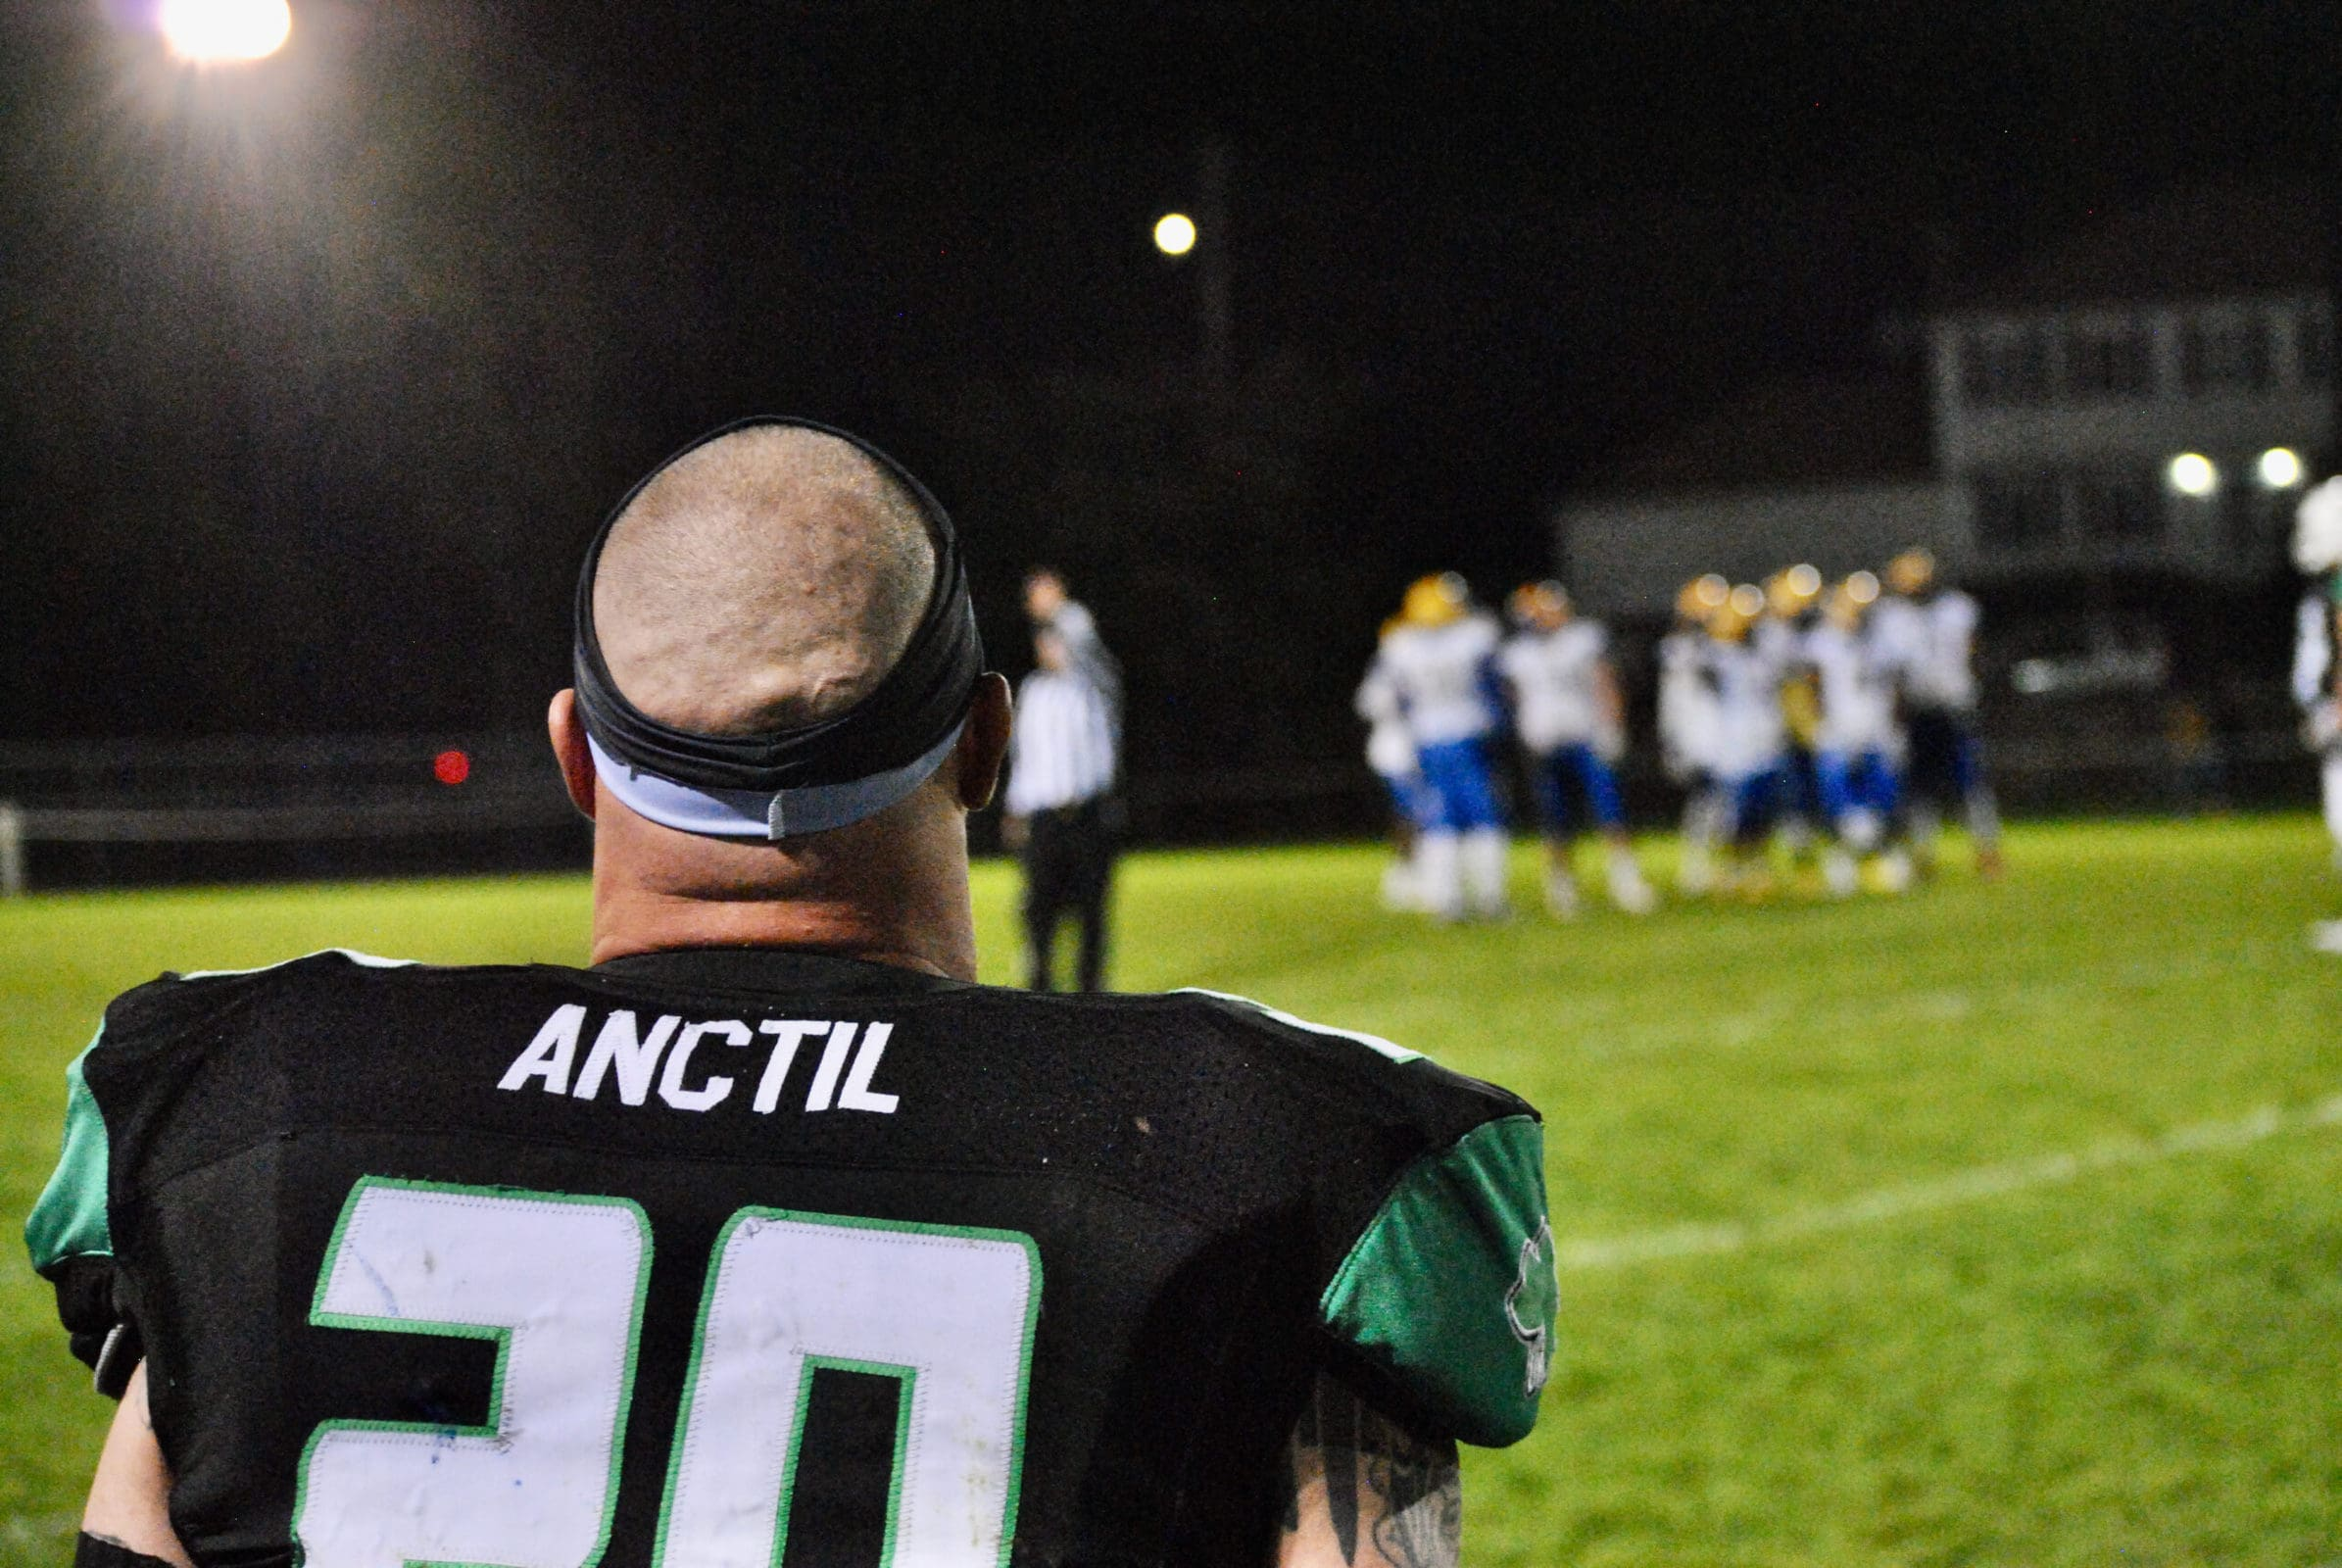 Marlborough's Brett Anctil watches the action during his team's game against Boston.